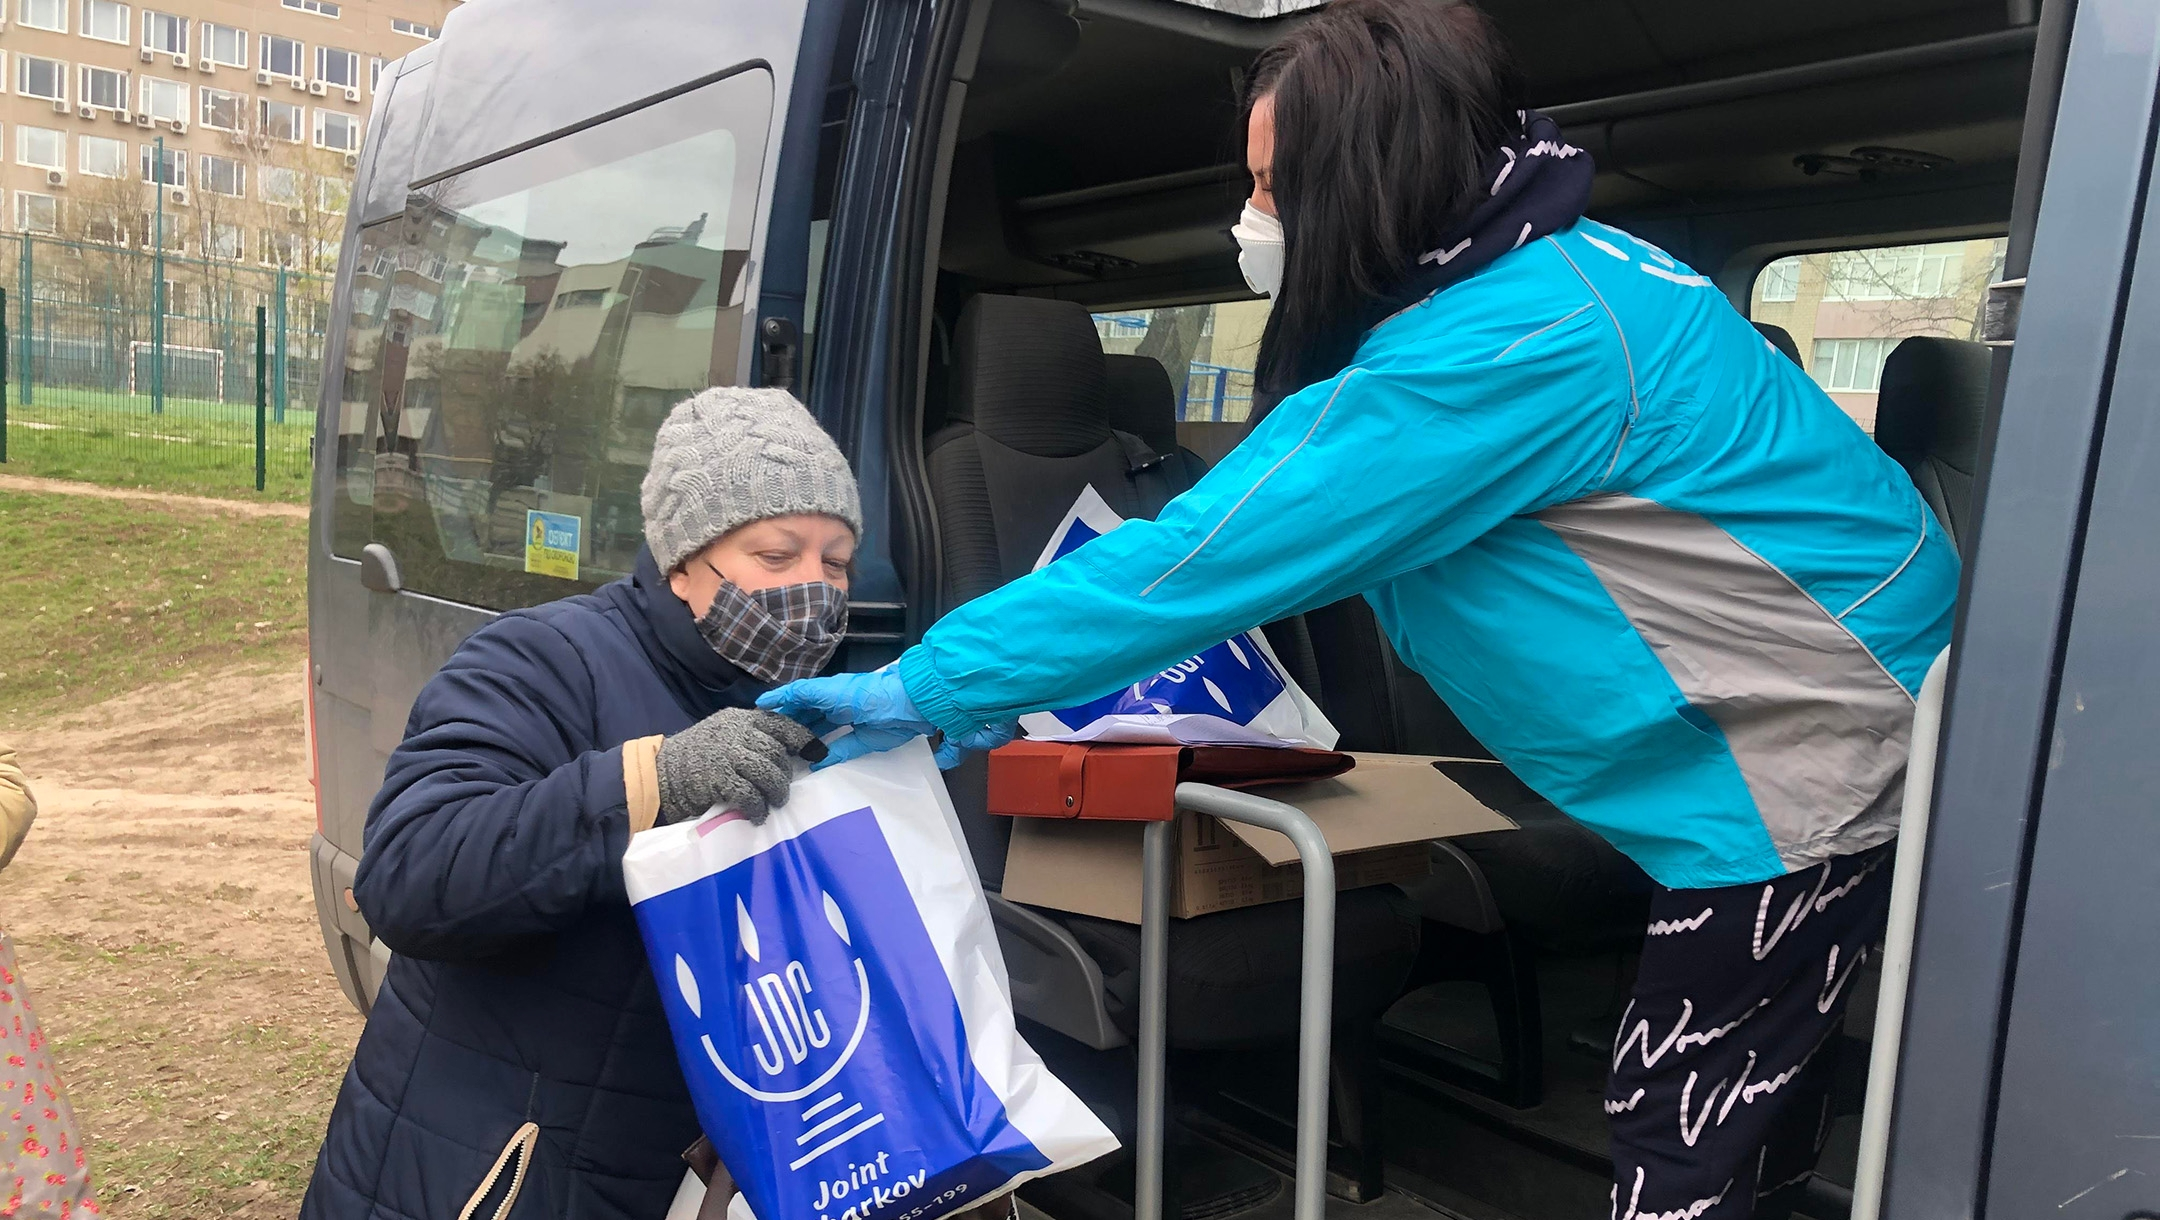 An employee of the American Jewish Joint Distribution Committee, right, hands out an aid package to a Jewish woman in Kharkiv, Ukraine during the coronavirus pandemic in March 2020. (Courtesy of JDC)